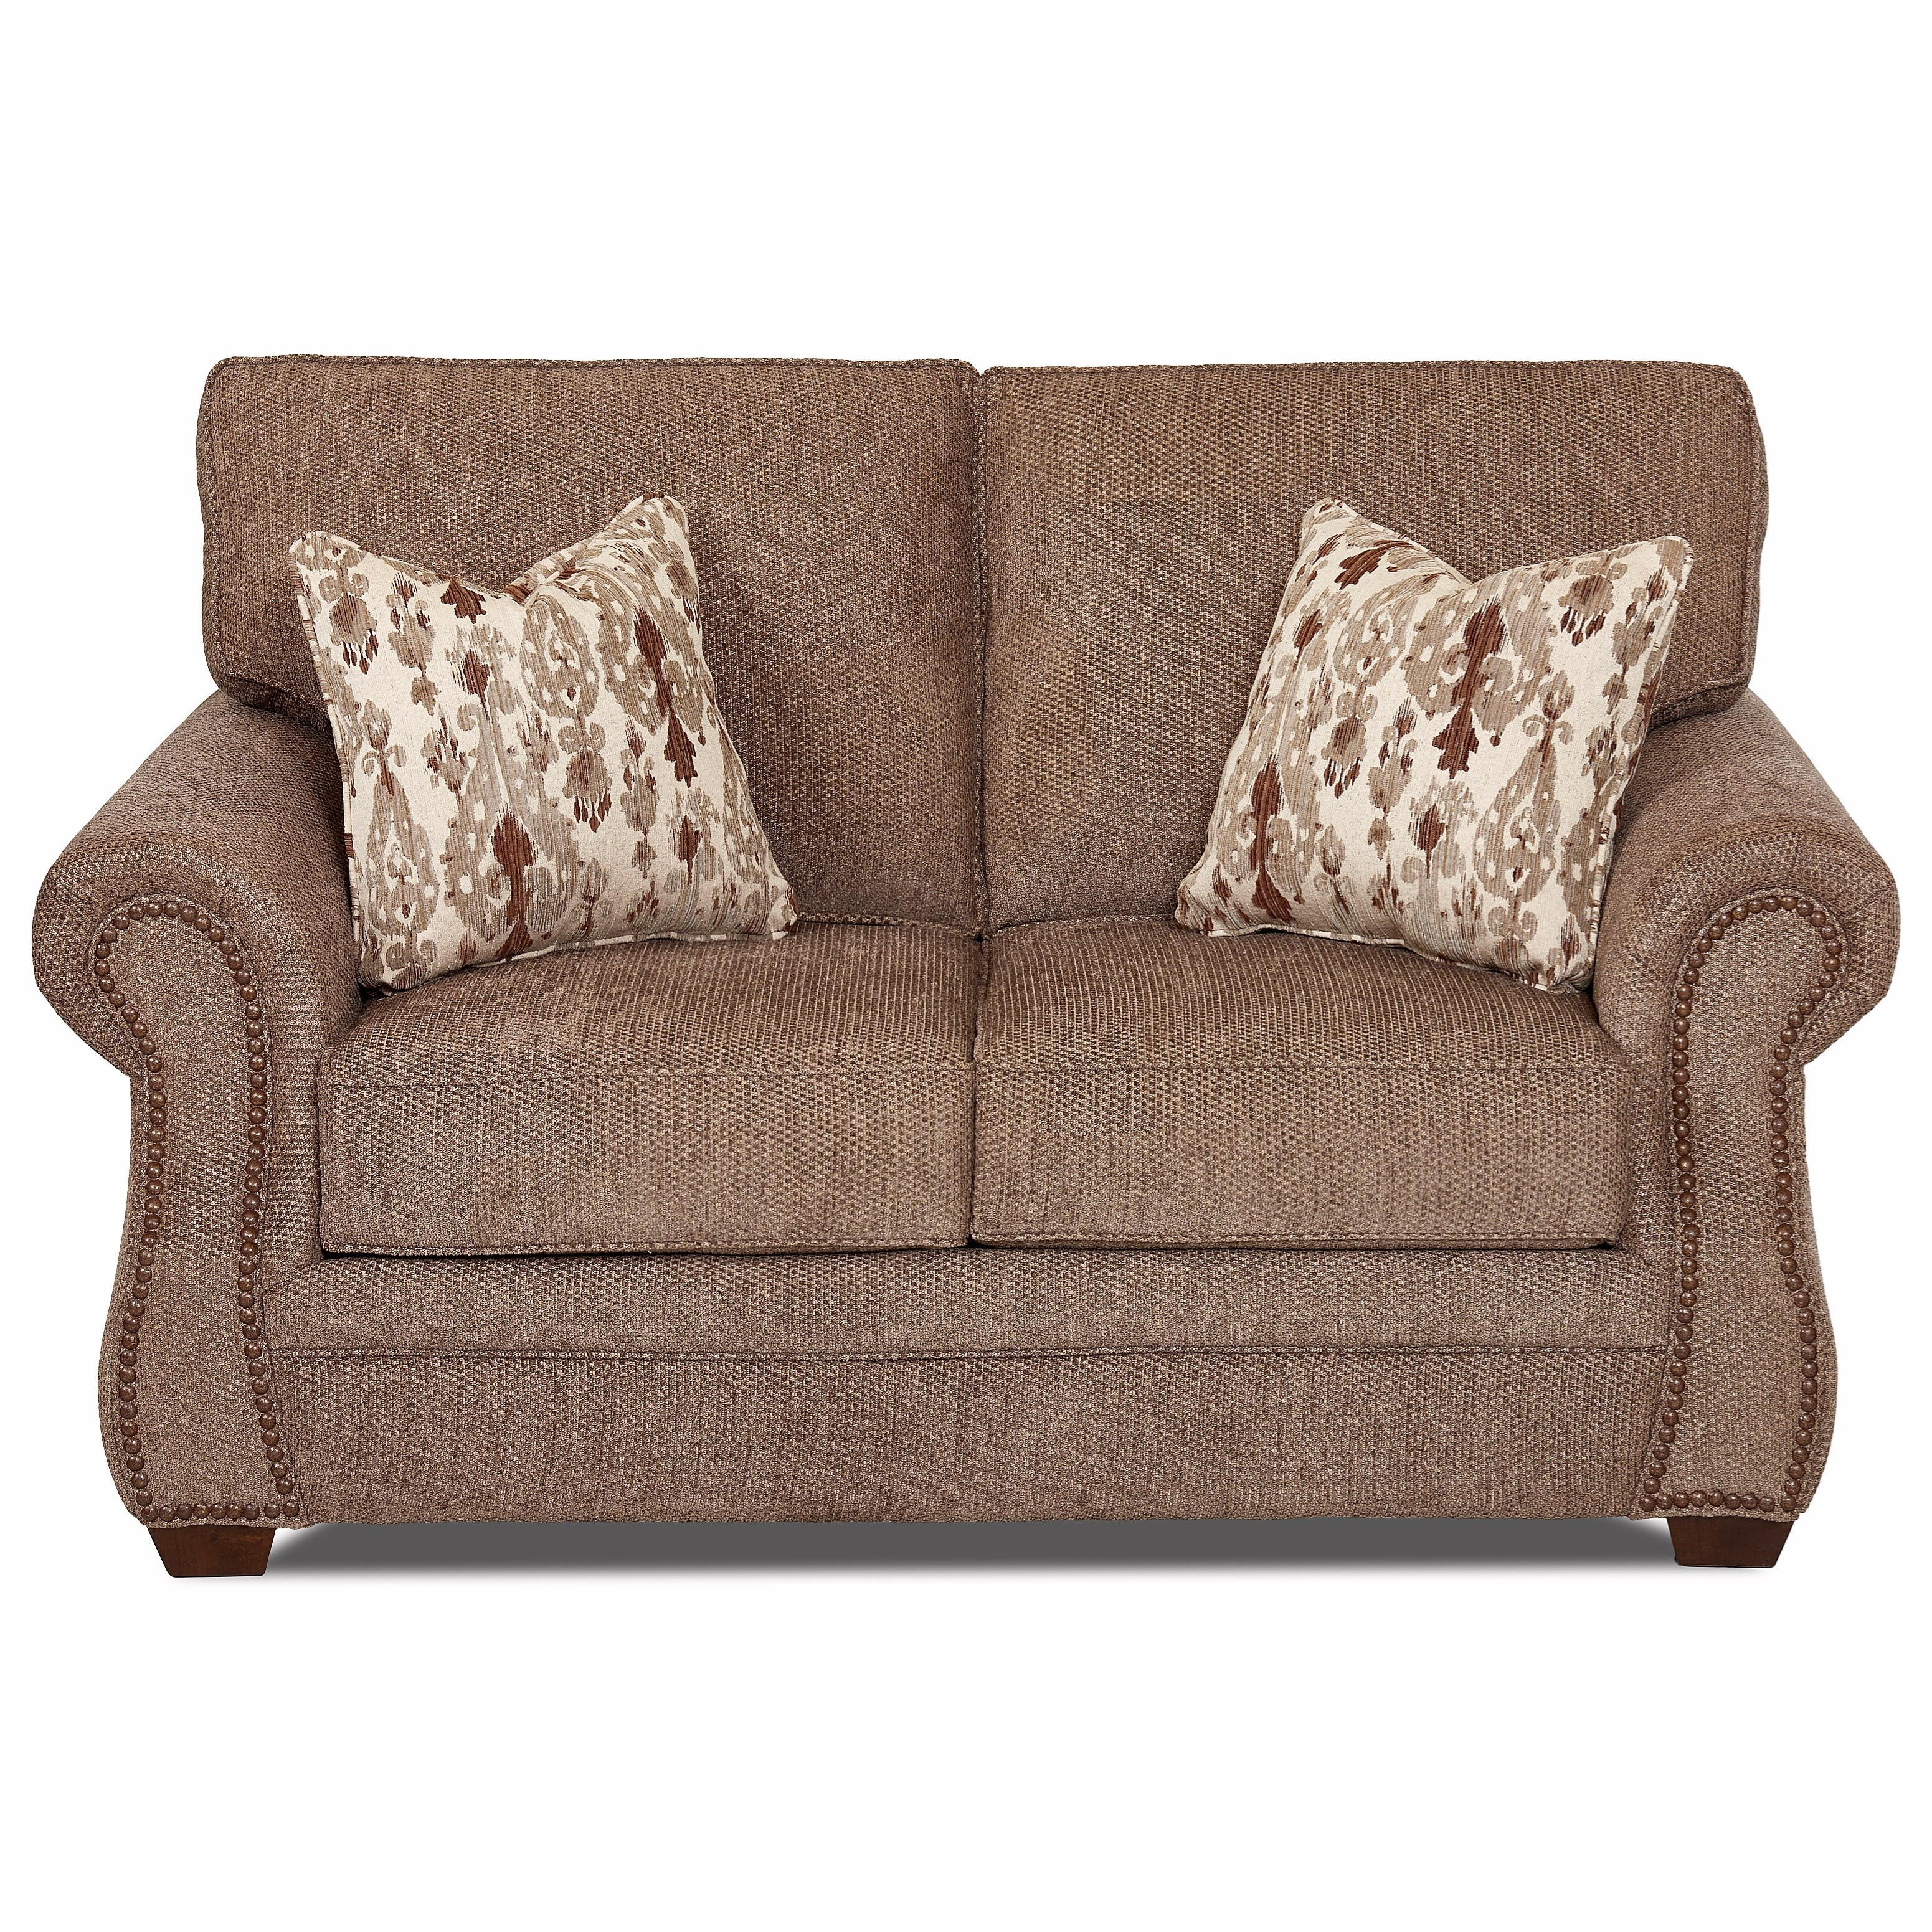 Traditional Loveseat with Nailhead Trim